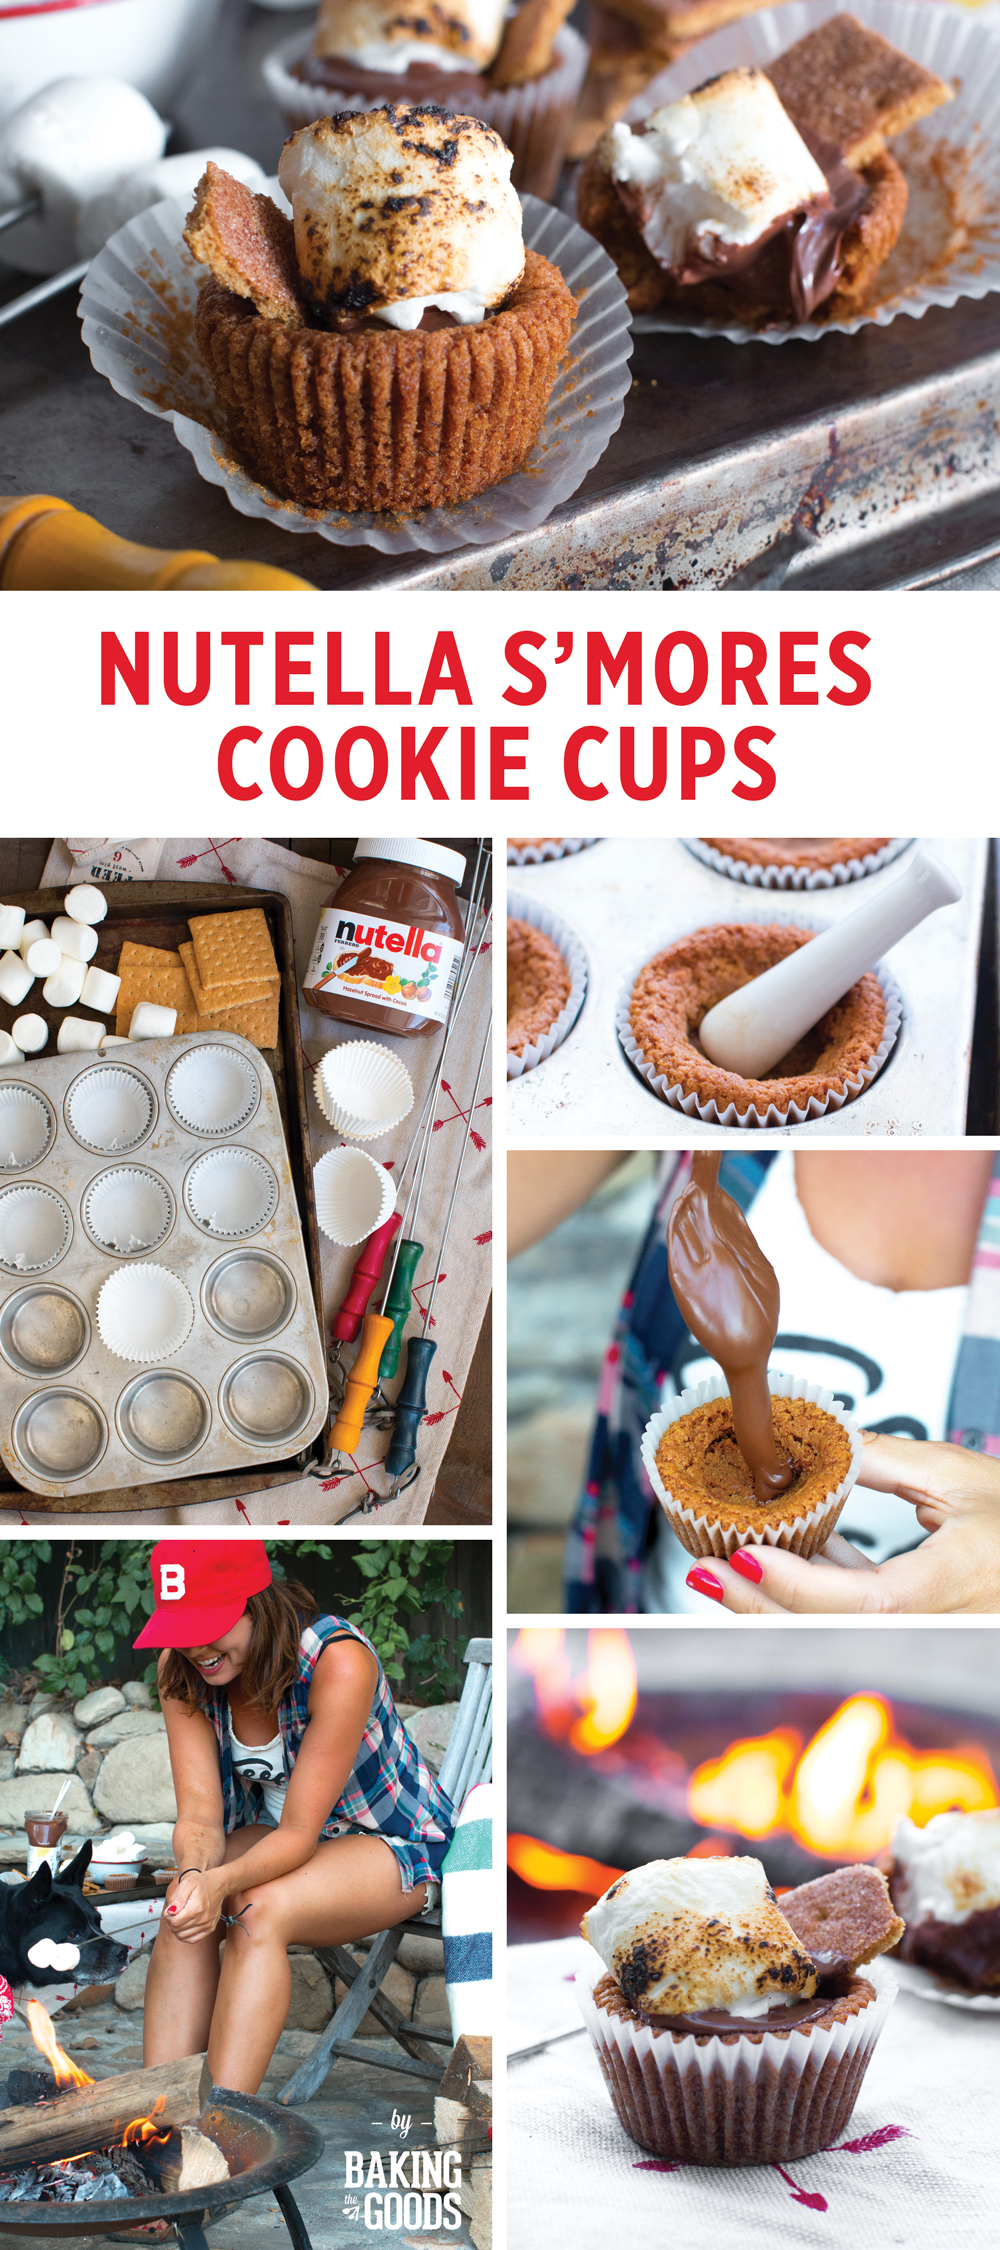 Nutella S'mores Cookie Cups by Baking The Goods